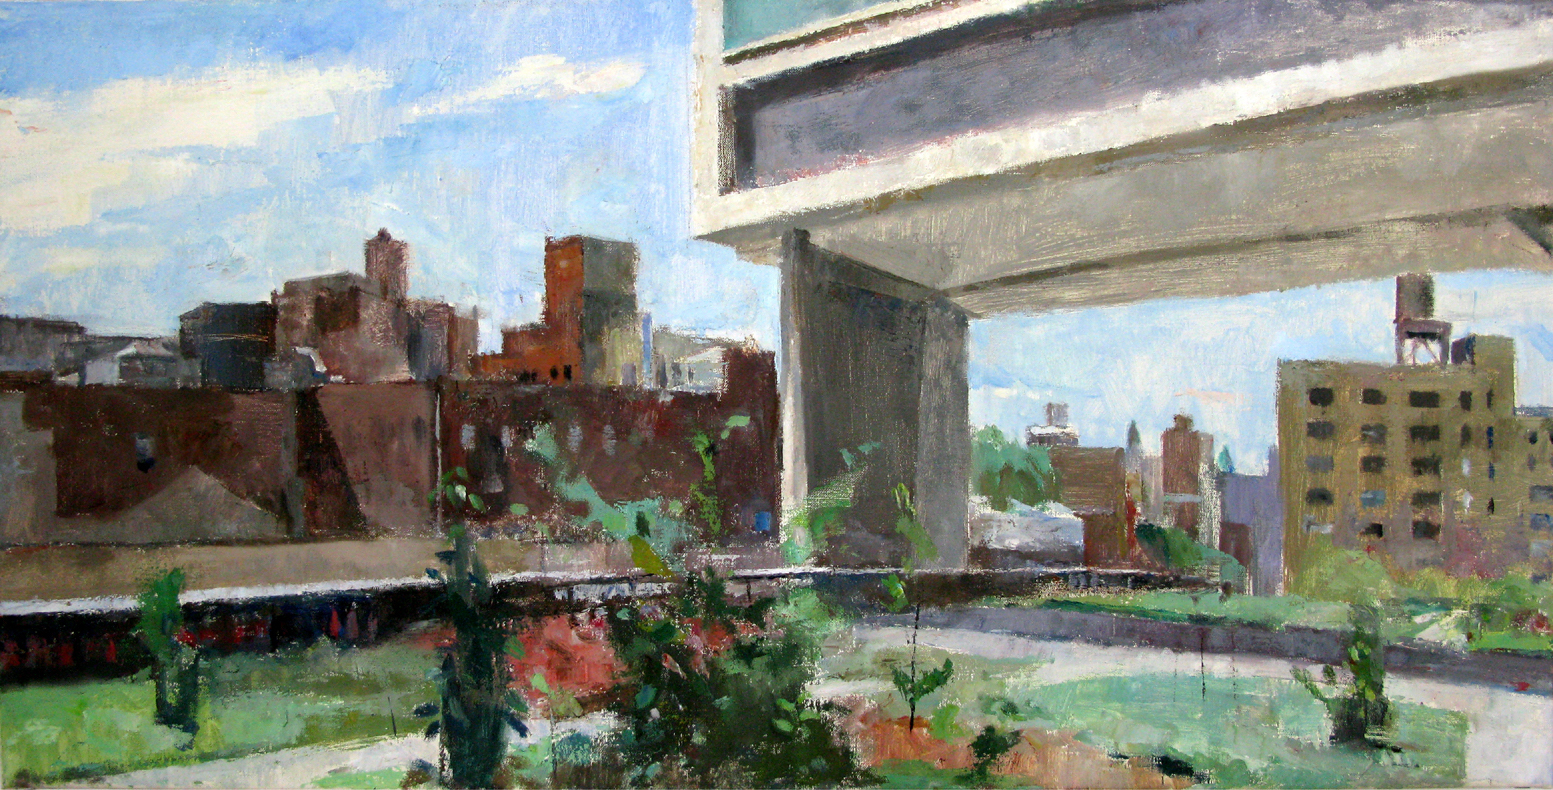 The High Line, Near the Standard, 17 x 34 inches, oil on linen.